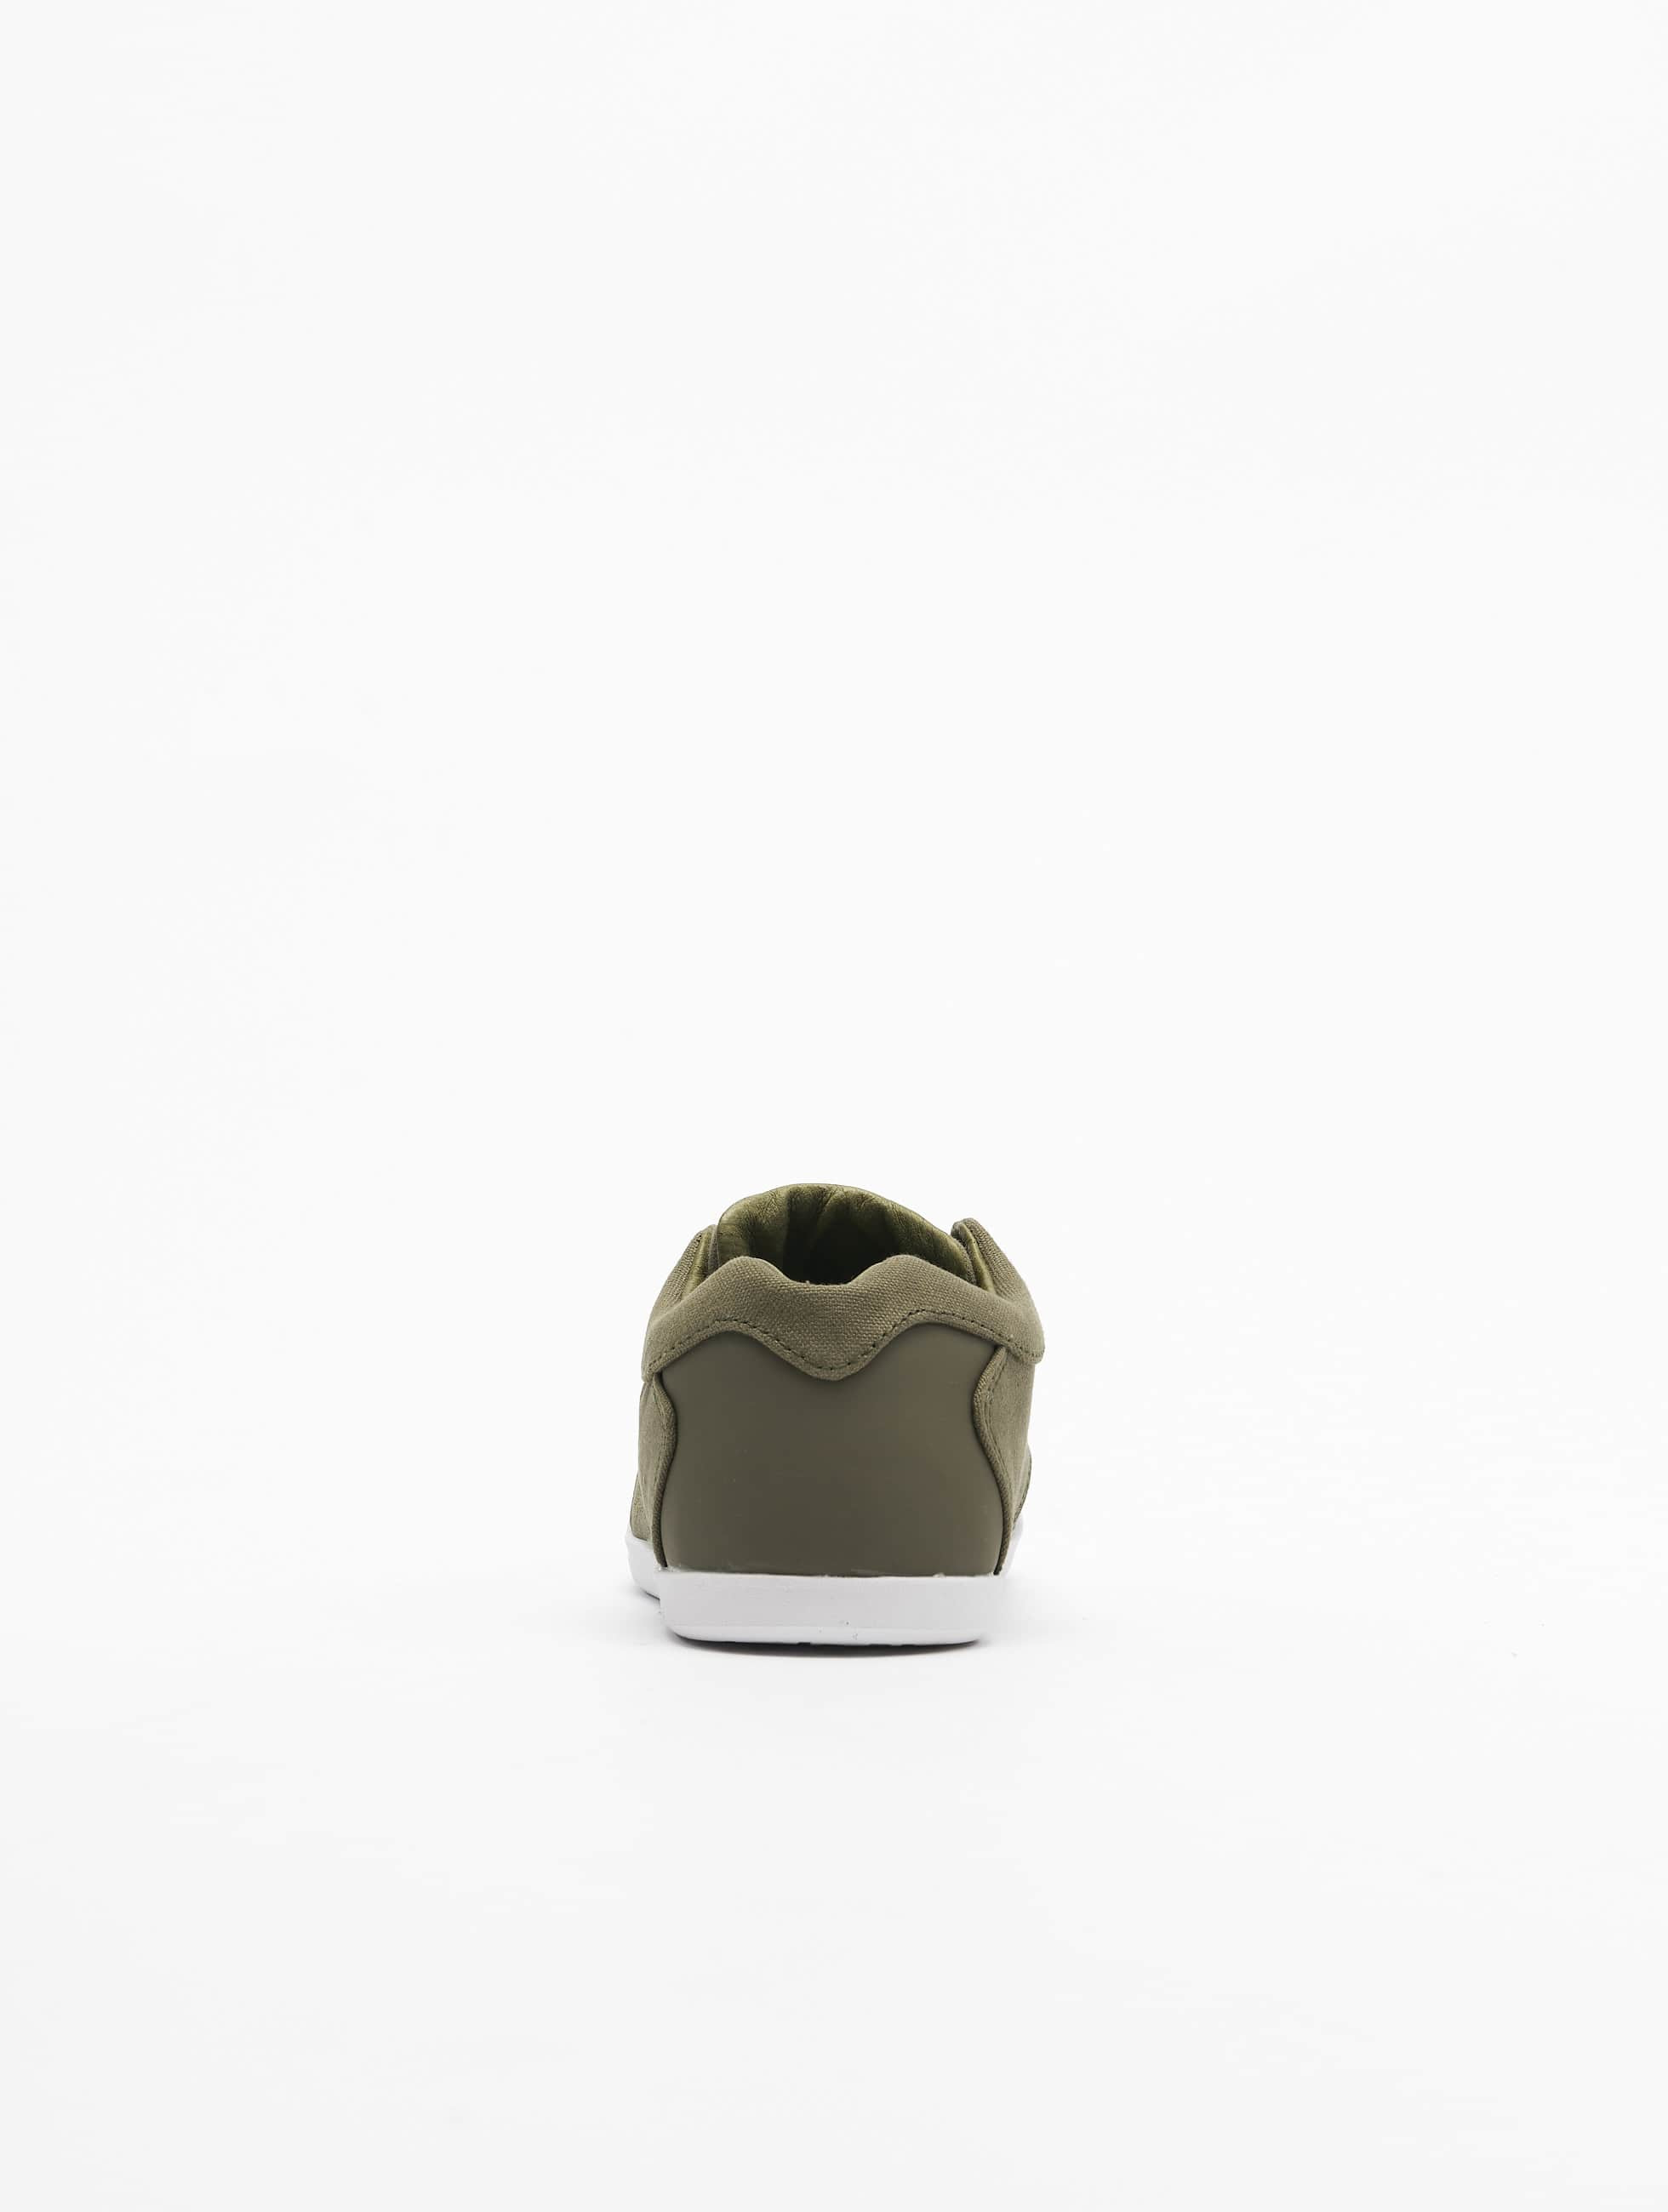 K1X Sneaker LP Low SP khaki